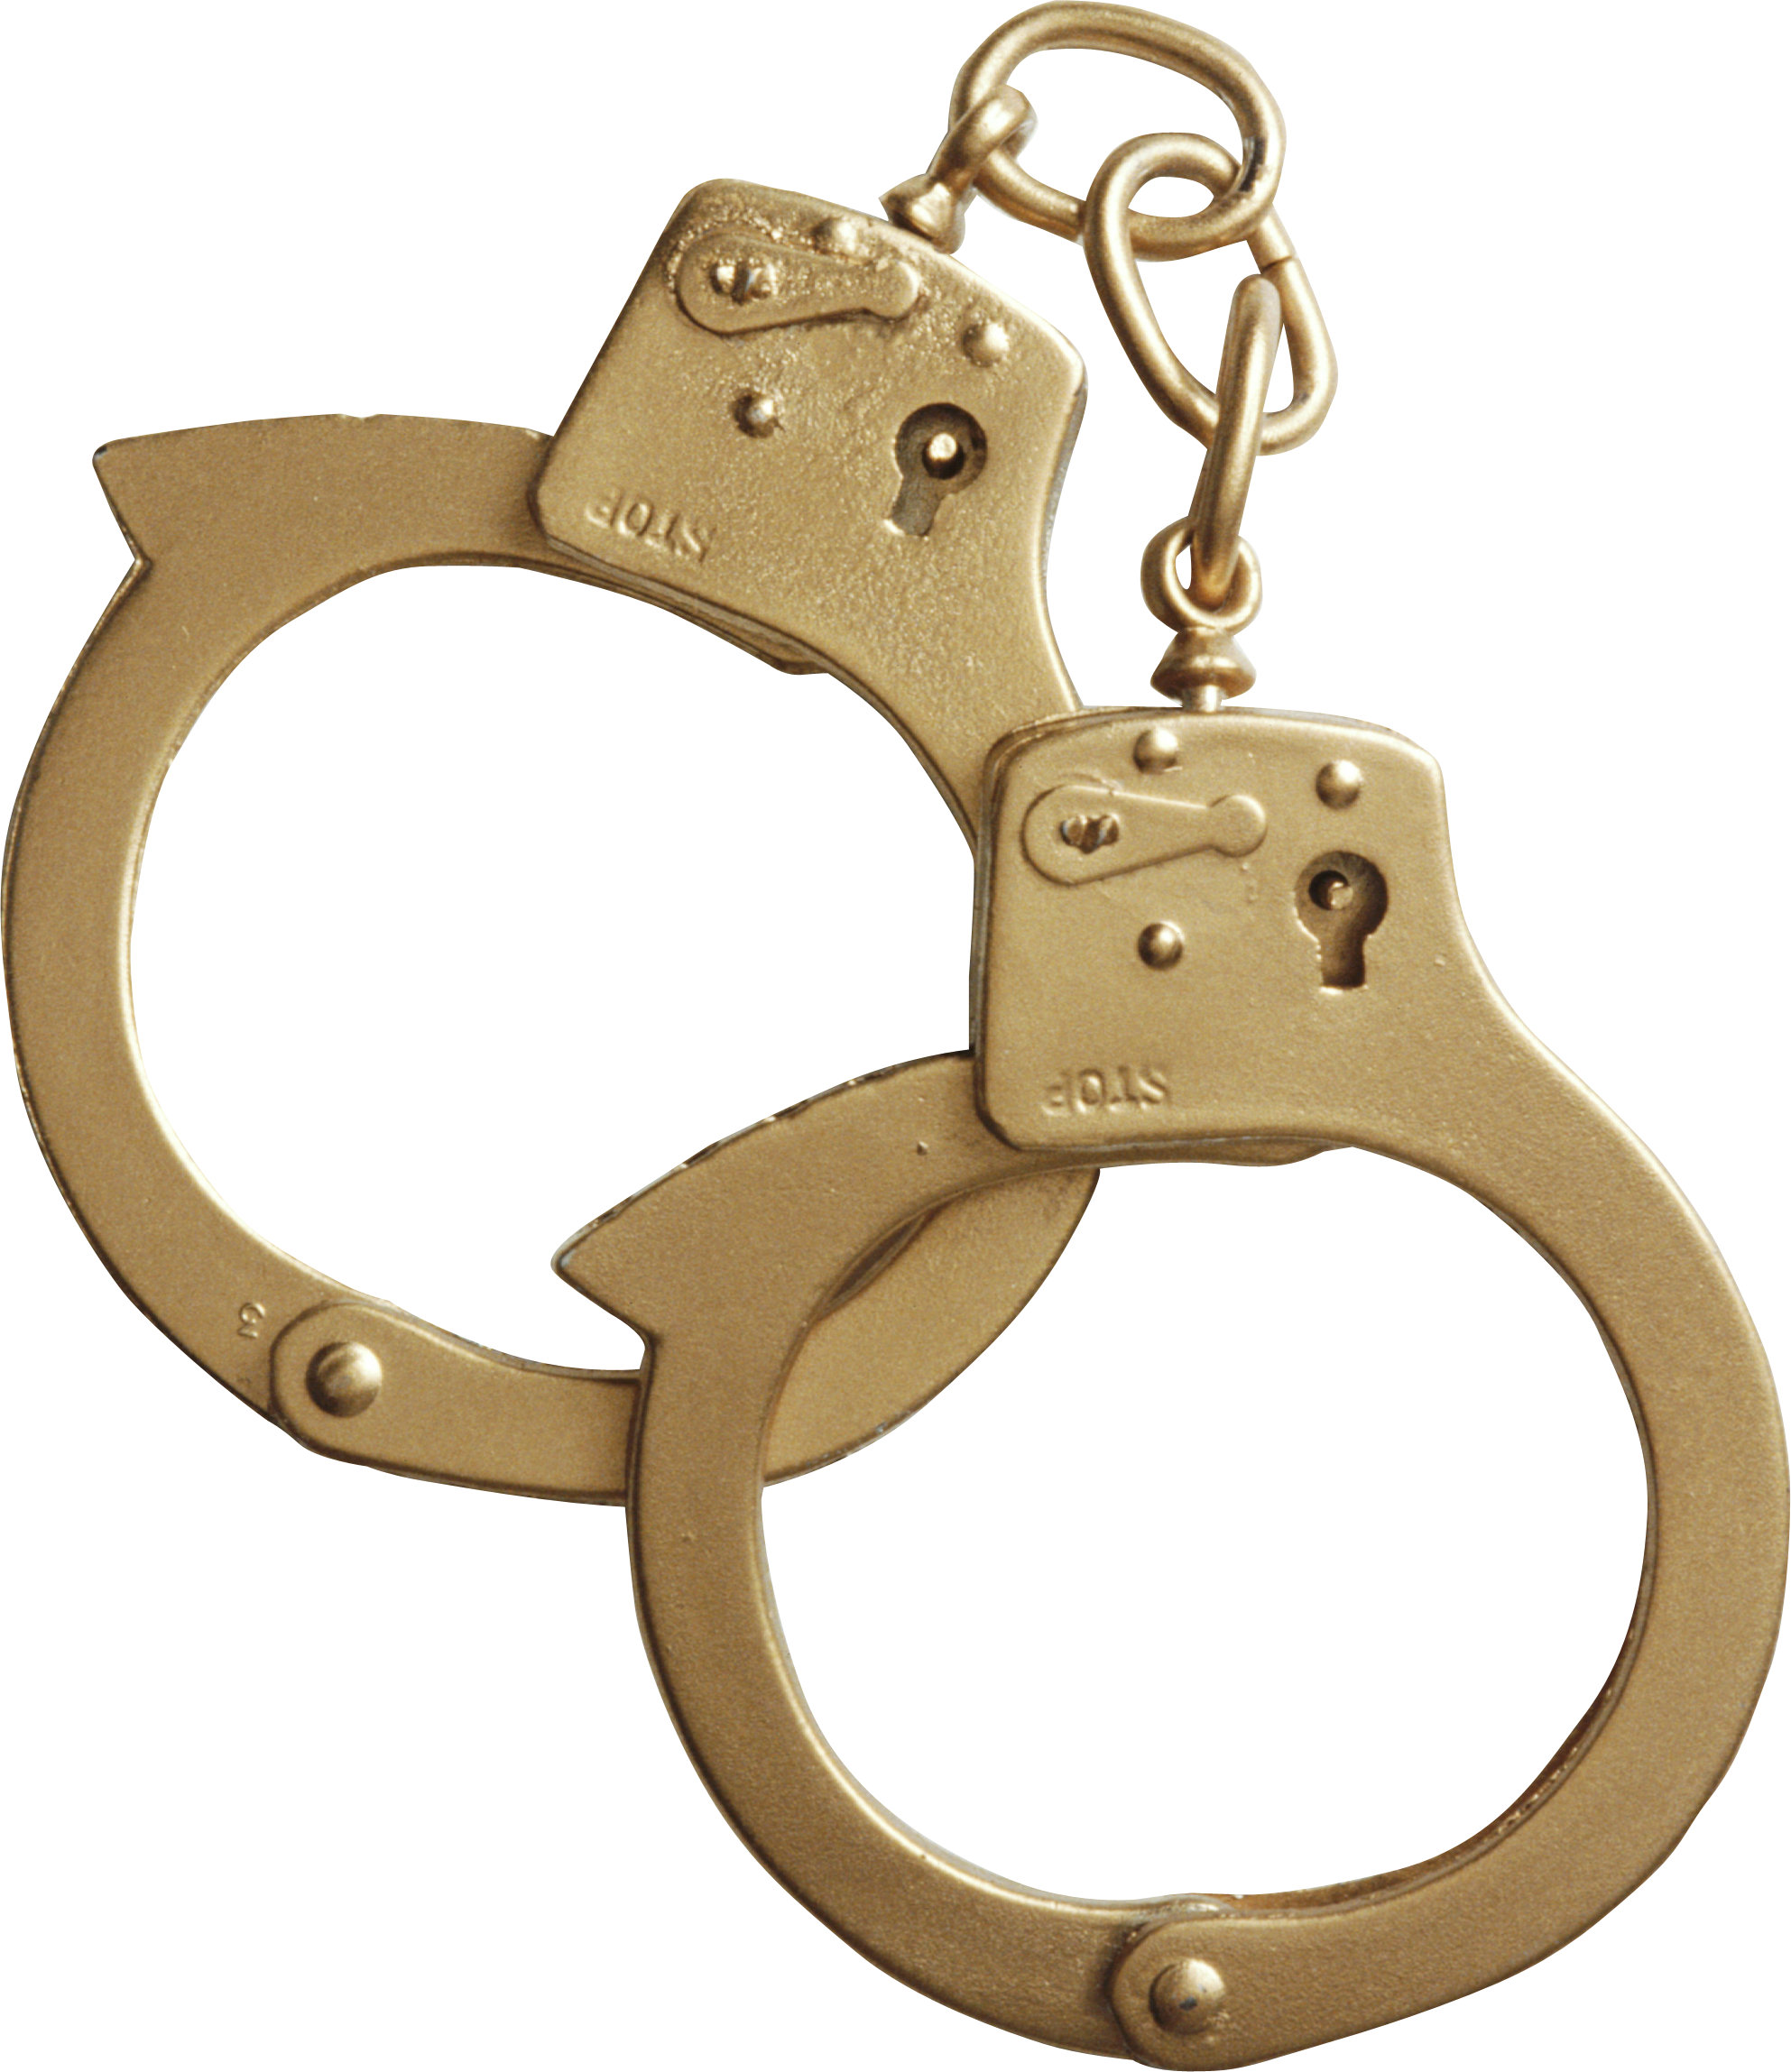 clipart black and white stock Golden cuffs png image. Handcuff clipart custody